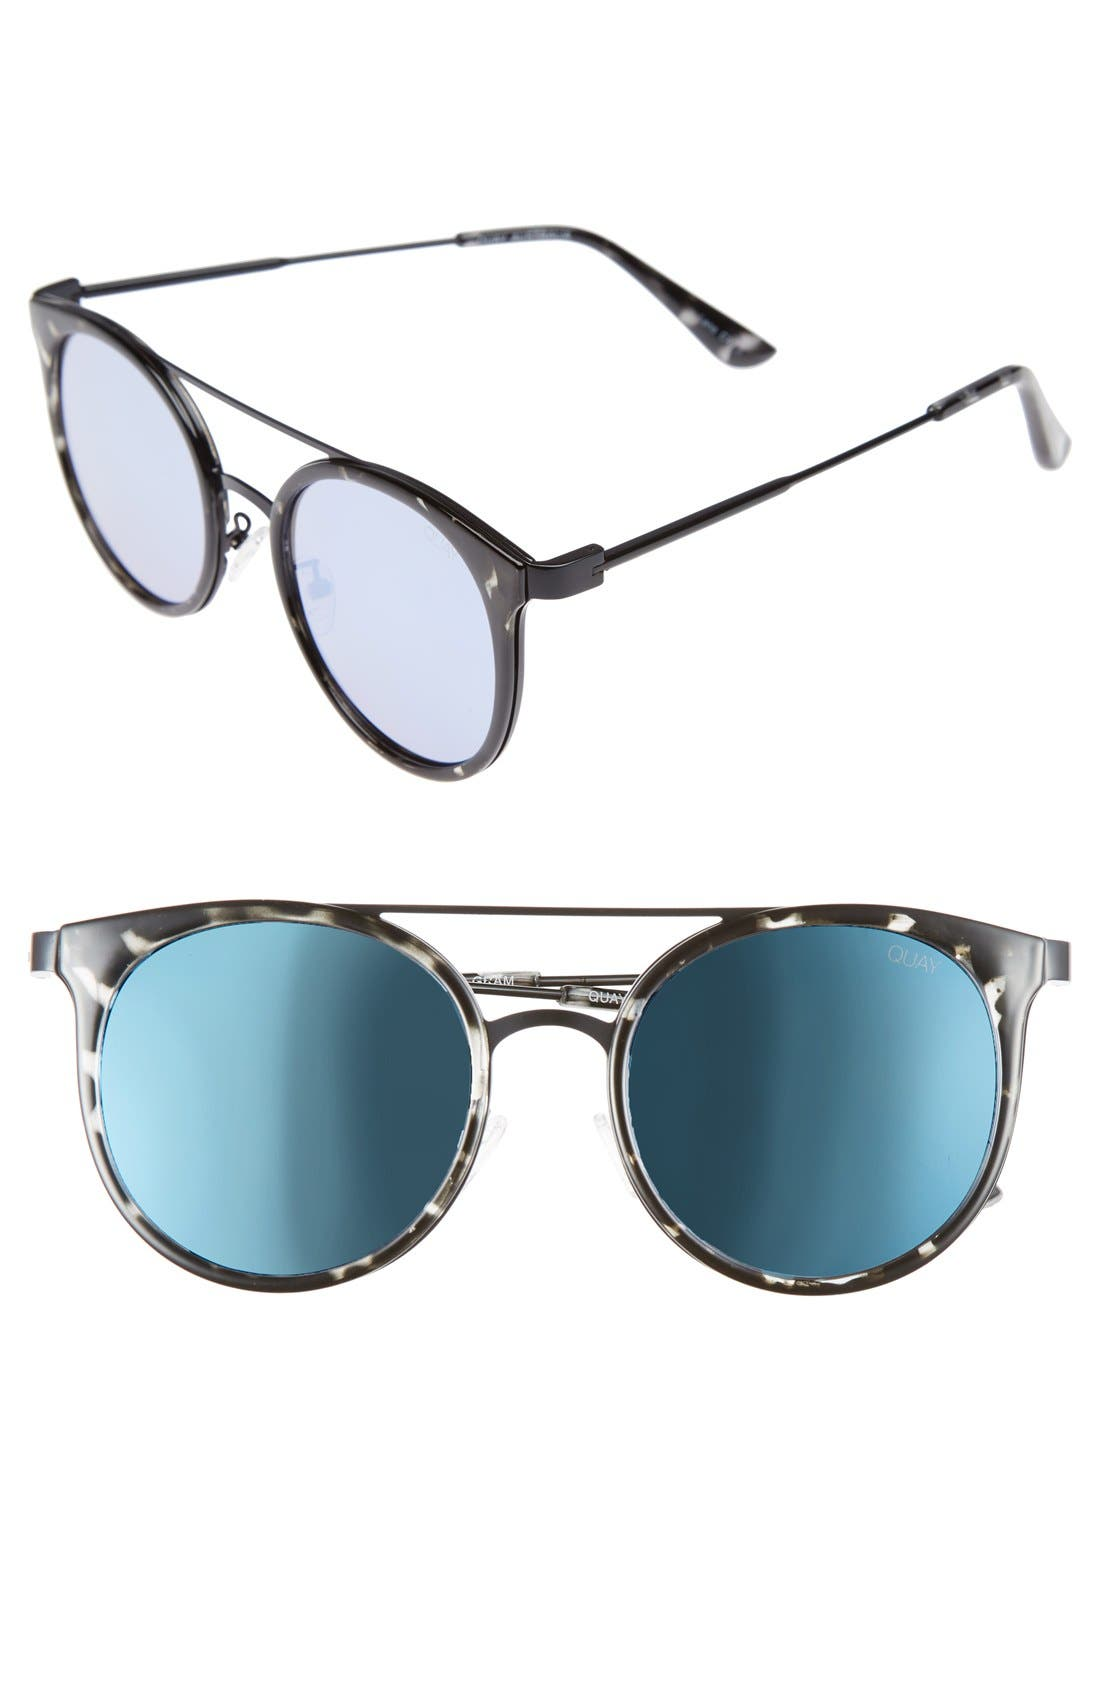 Kandy Gram 51mm Round Sunglasses,                             Main thumbnail 1, color,                             Black Tort/ Blue